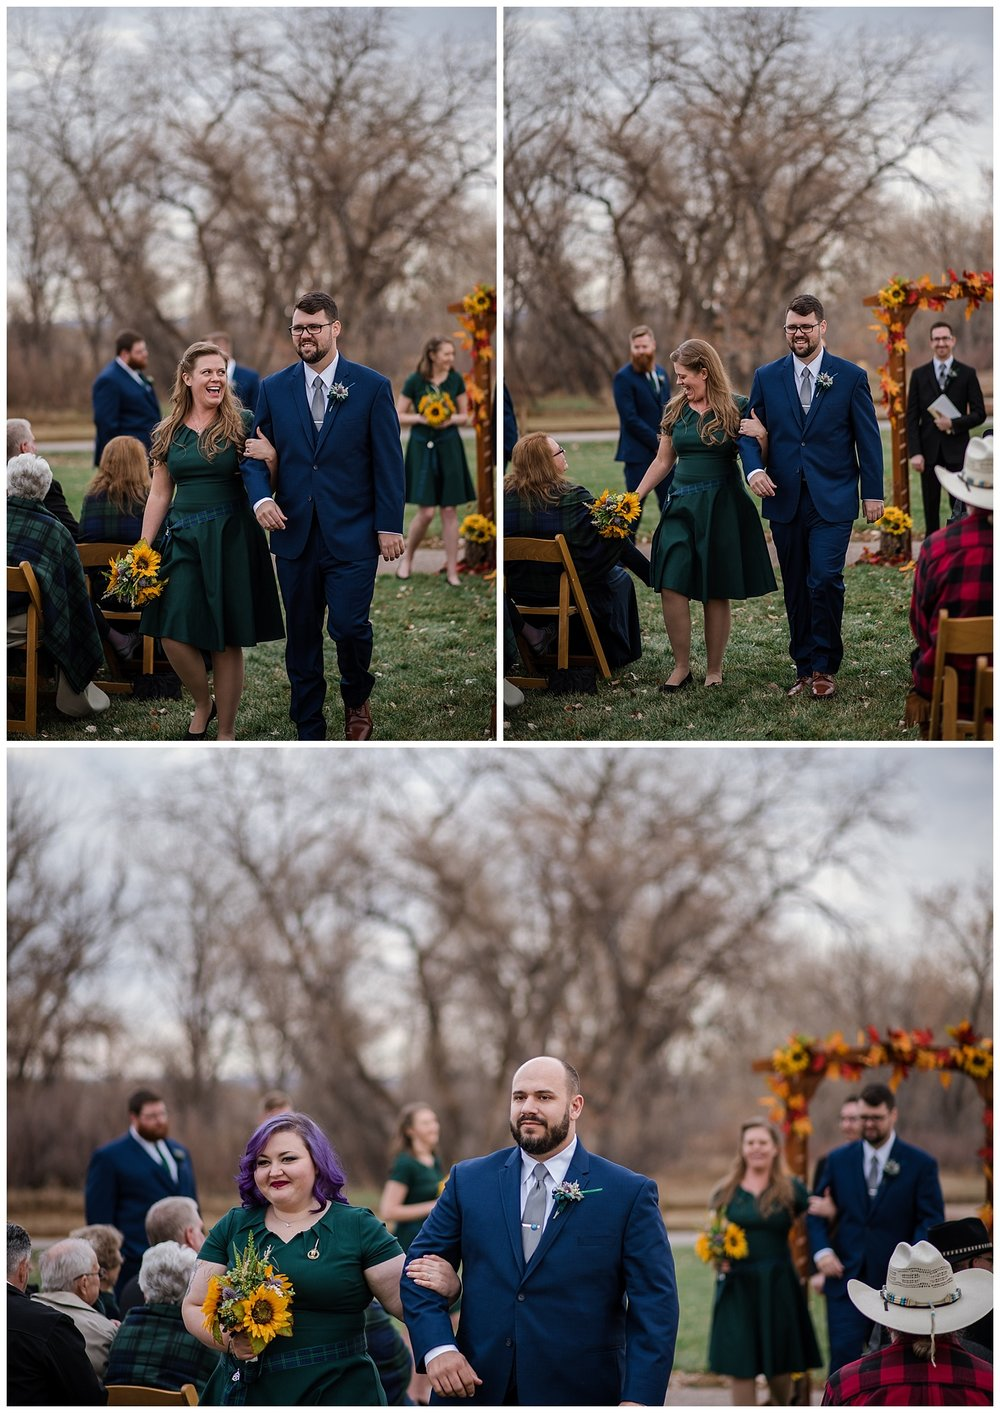 wedding ceremony at botanic gardens, Barn wedding in colorado, colorado wedding photographer, denver wedding photographer, star wars wedding, dr who wedding, lord of the rings wedding, harry potter wedding, Downtown Denver Wedding Photographer, Small Colorado Wedding Photographer, Rocky Mountain Wedding Photographer